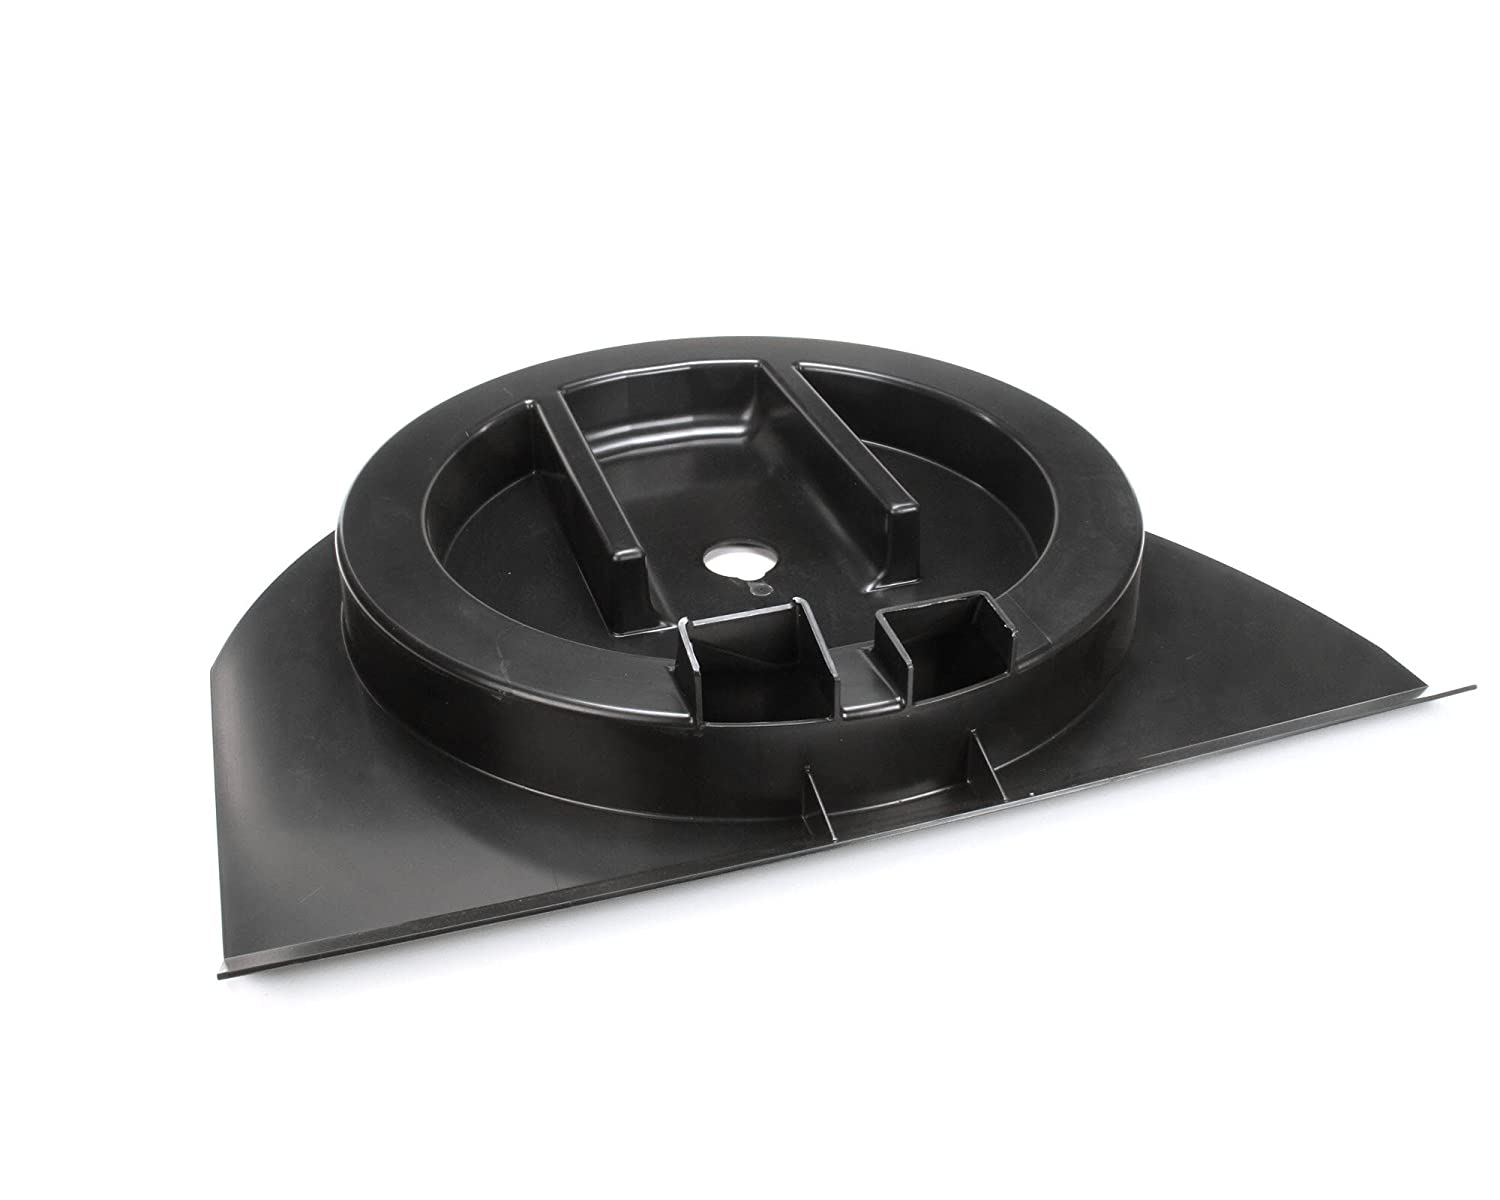 Image of Commercial Mixing Paddles MULTIPLEX 020000867 Paddle WH Area